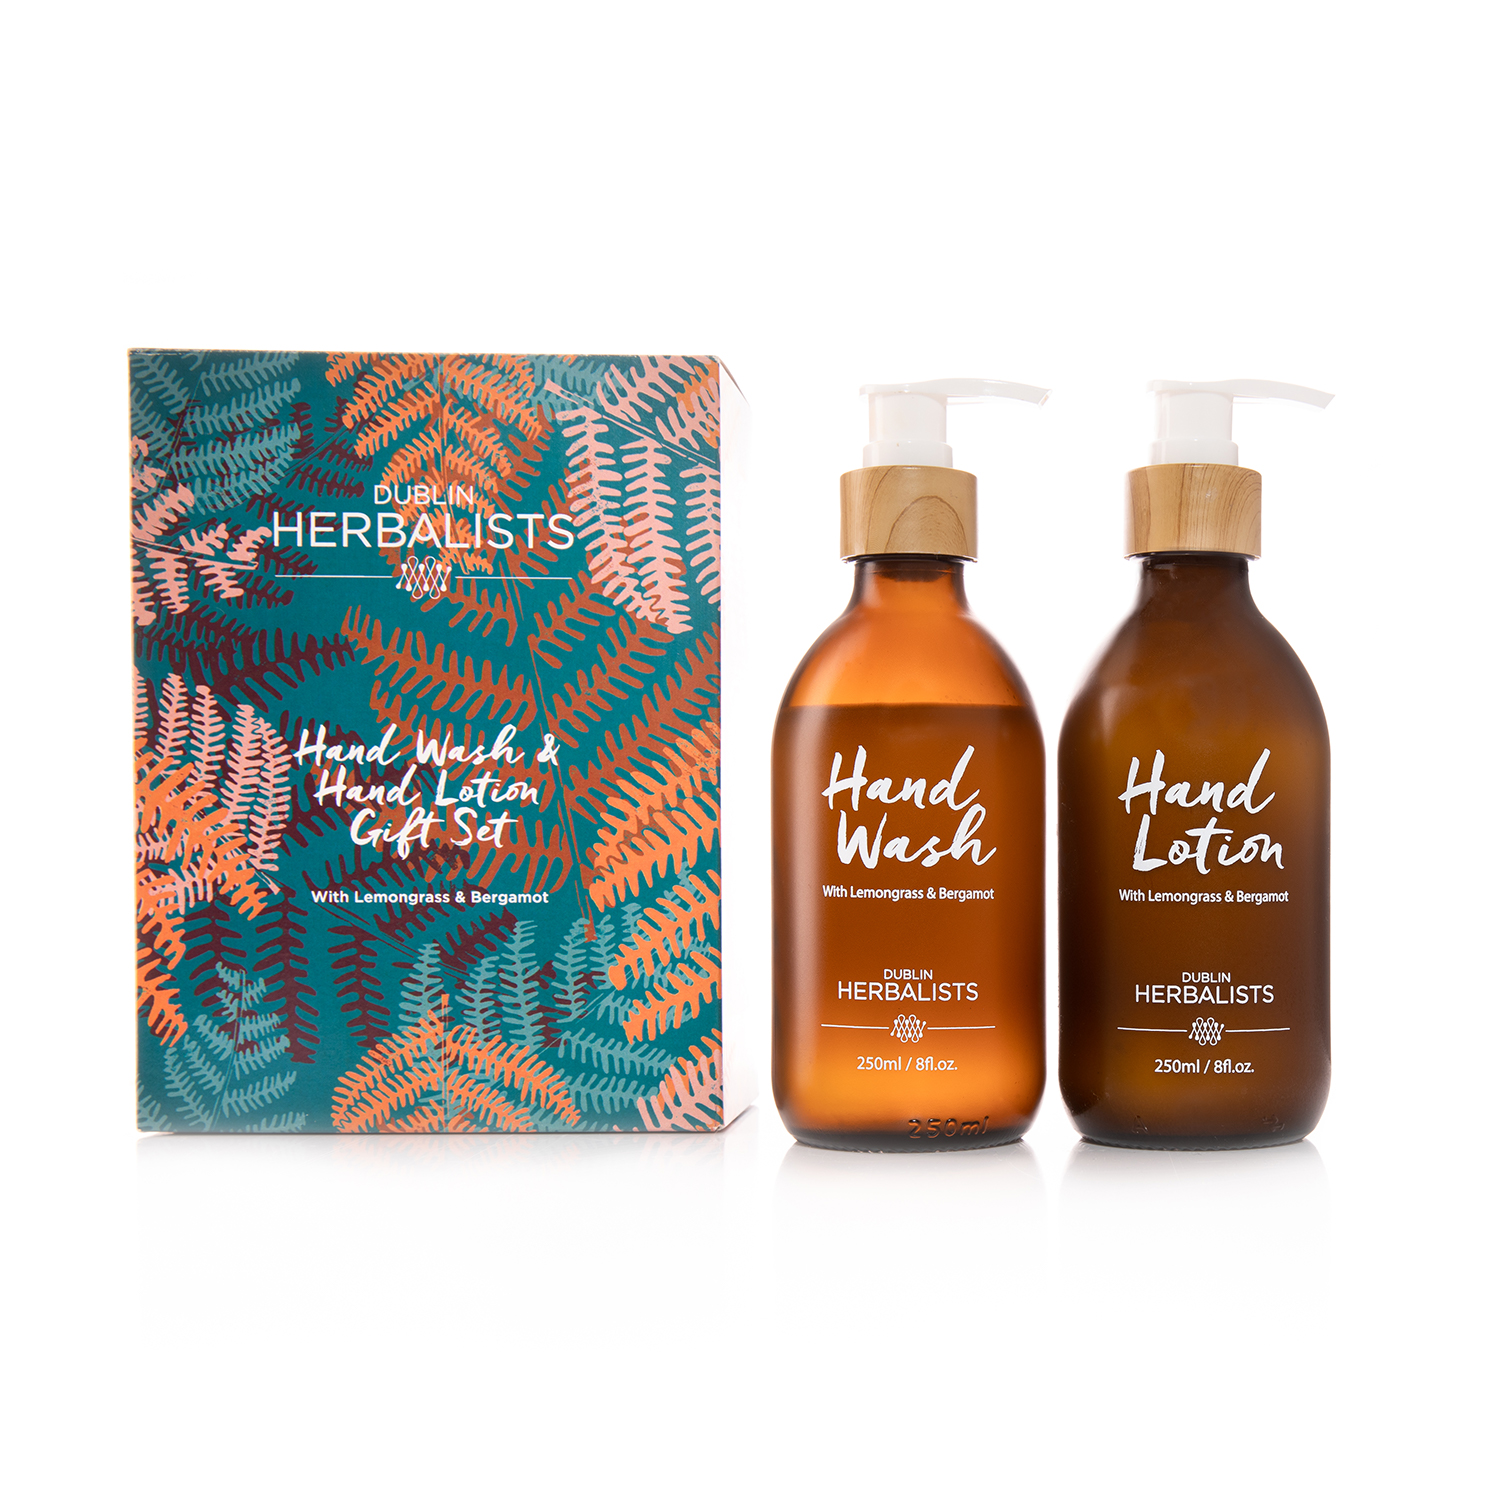 Hand-wash-and-lotion-gift-1500